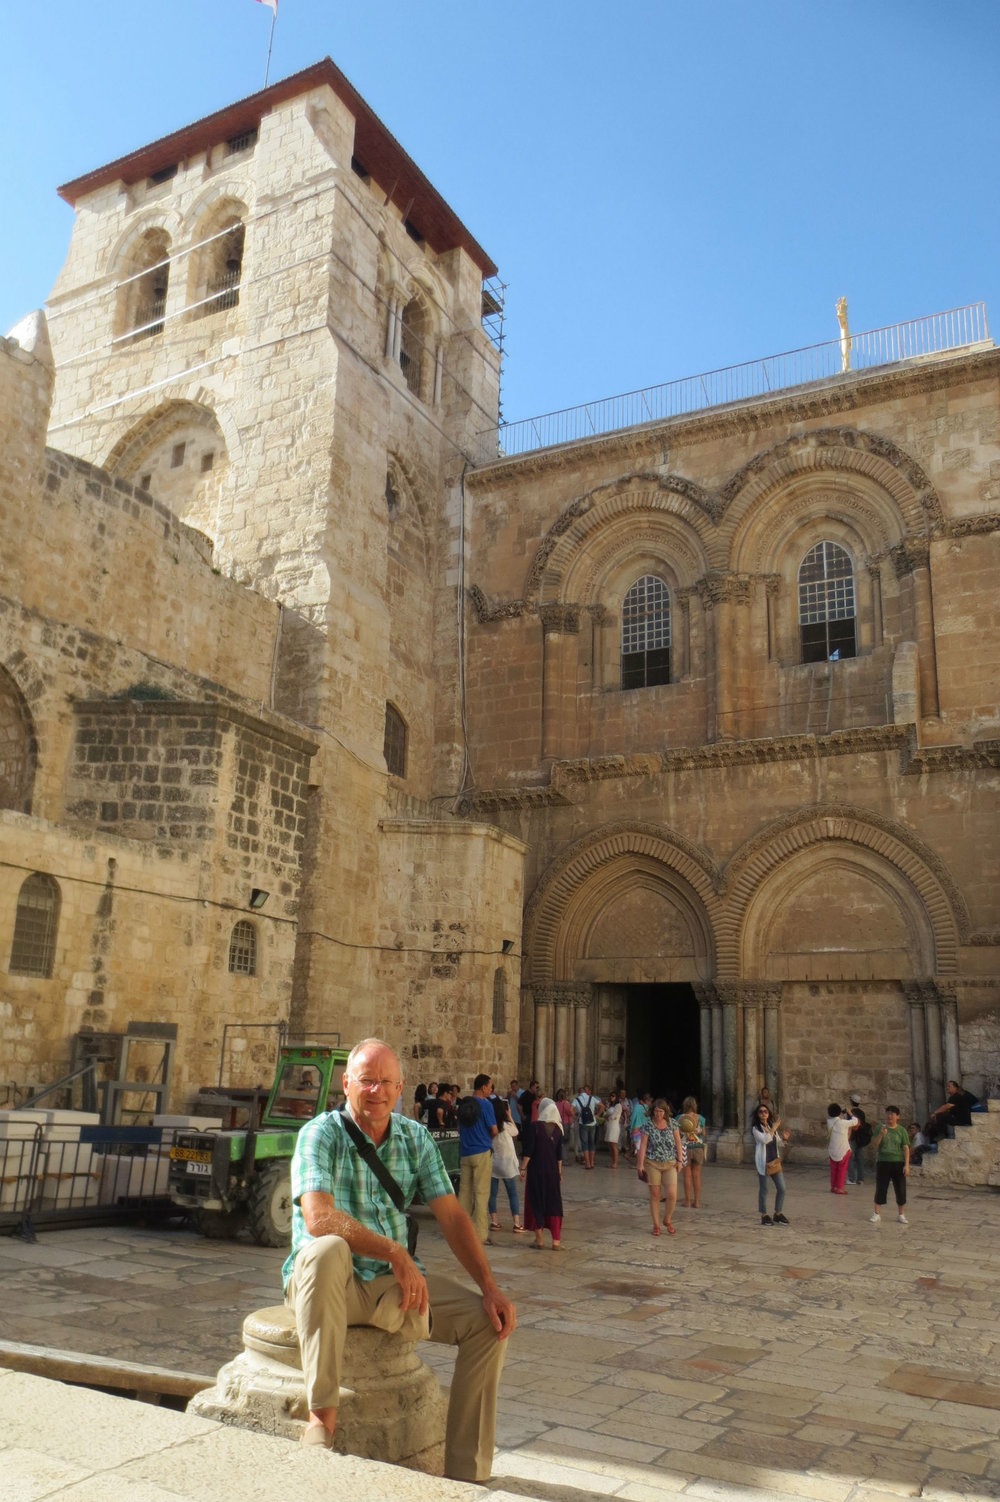 Frank in front of the Church of the Holy Sepulchre, the most holy place for Christians.